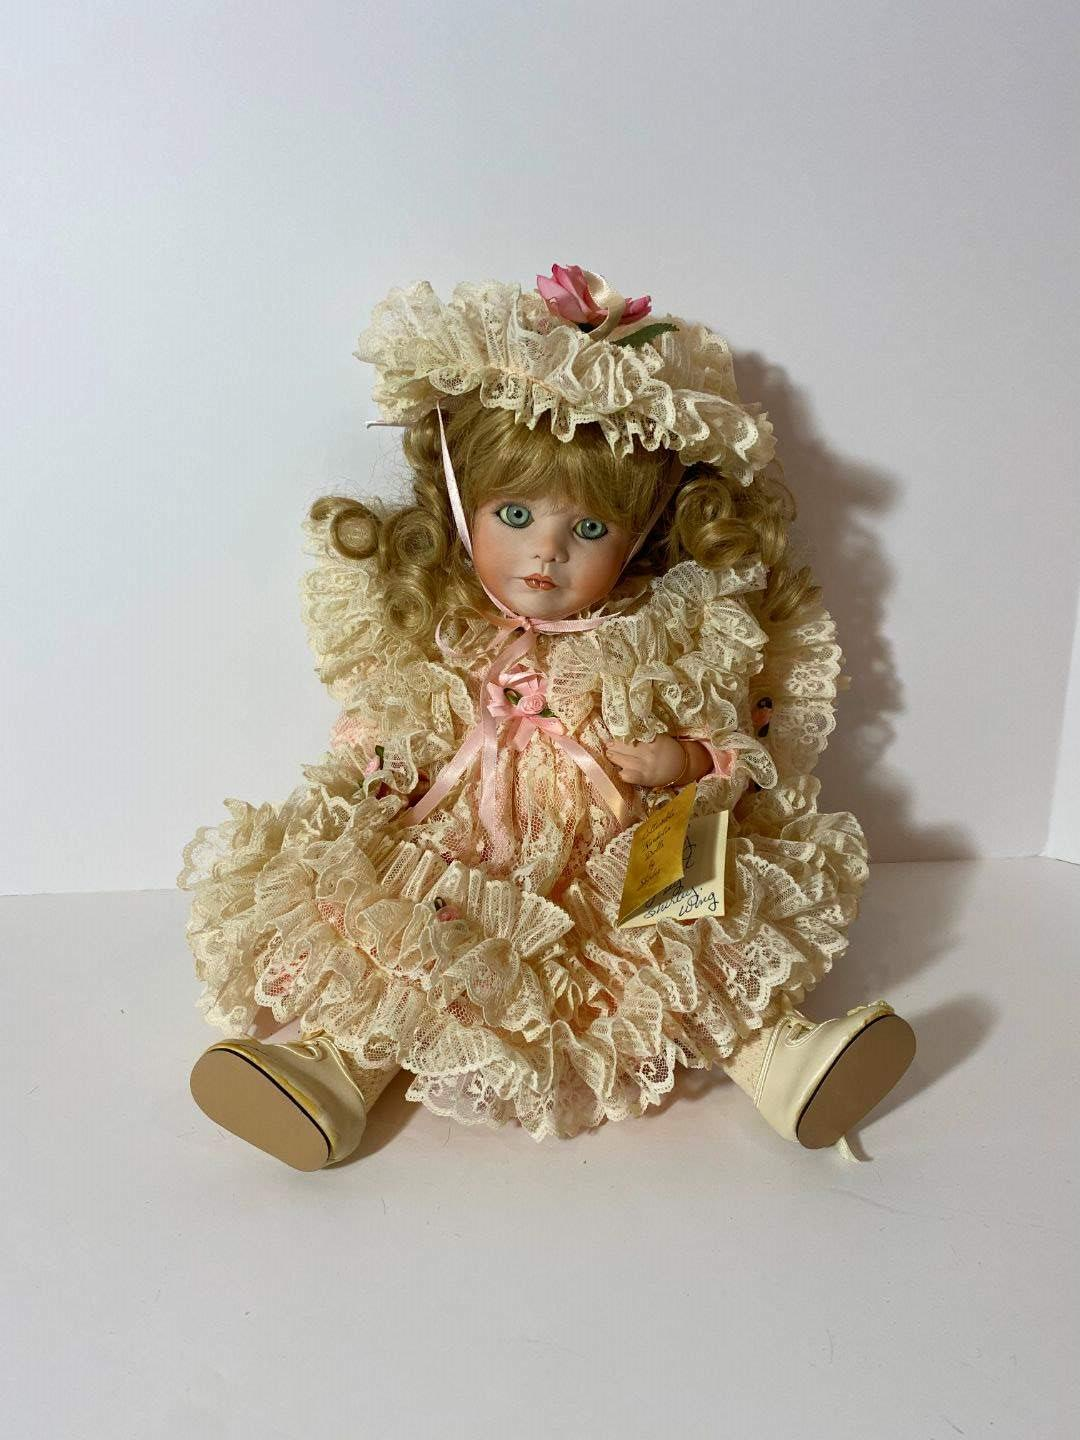 """Lot # 251 - 100% Porcelain """"Collectible Kardolin Dolls"""" by Shirley - Articulating Joints (Ashley) Signed & Numbered - #9/1000 (main image)"""